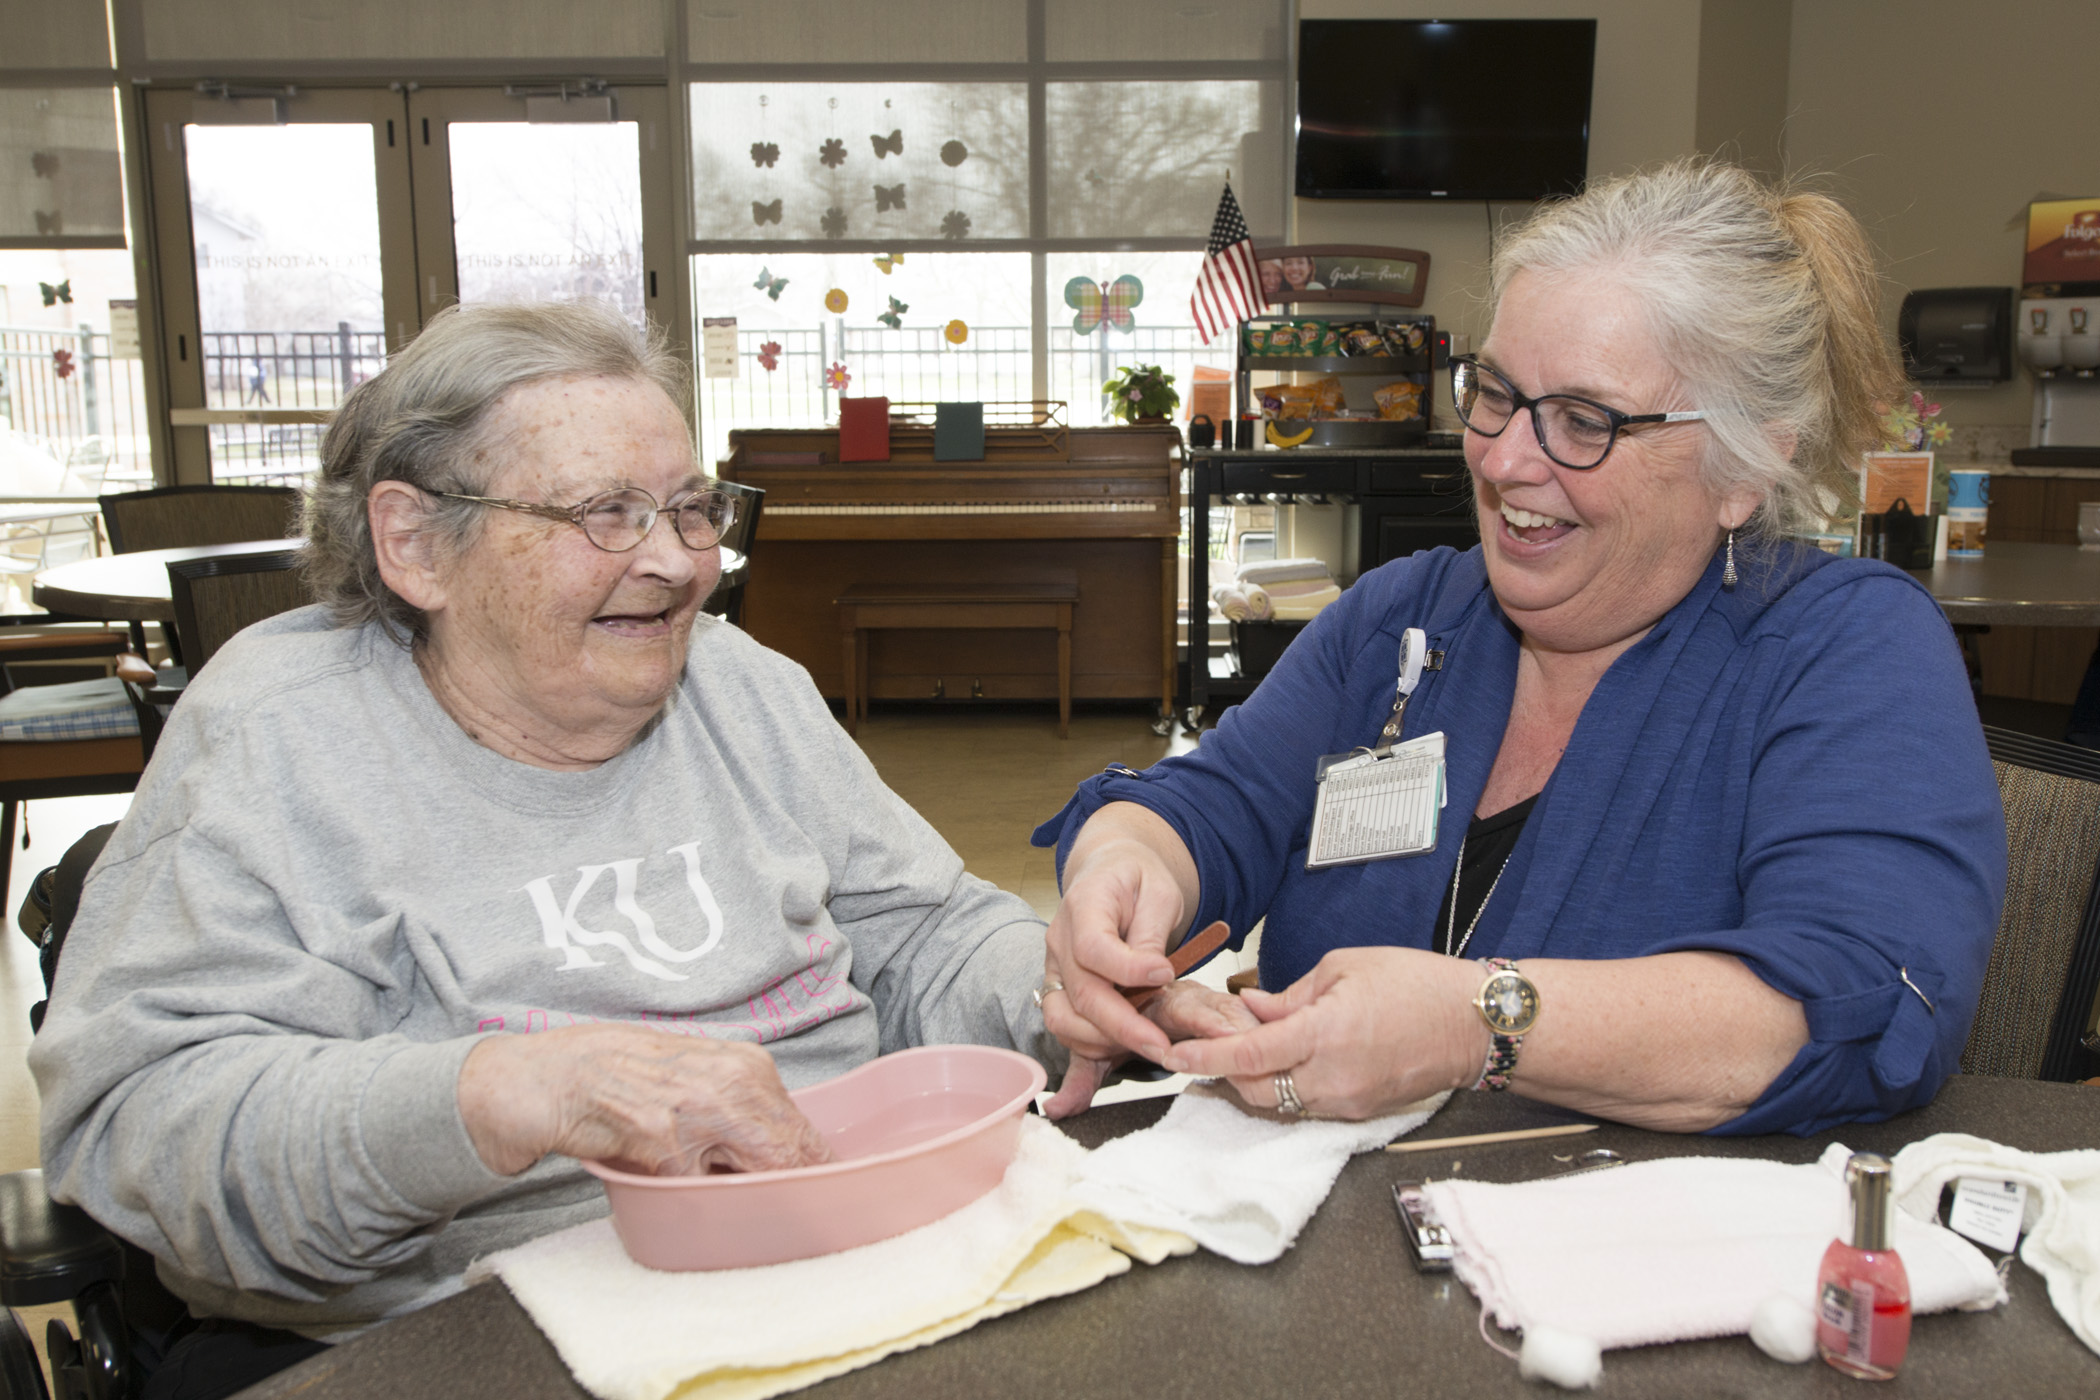 A provider laughs with a patient at the Residential Living Center, named one of the best nursing homes in Kansas by U.S. News & World Report